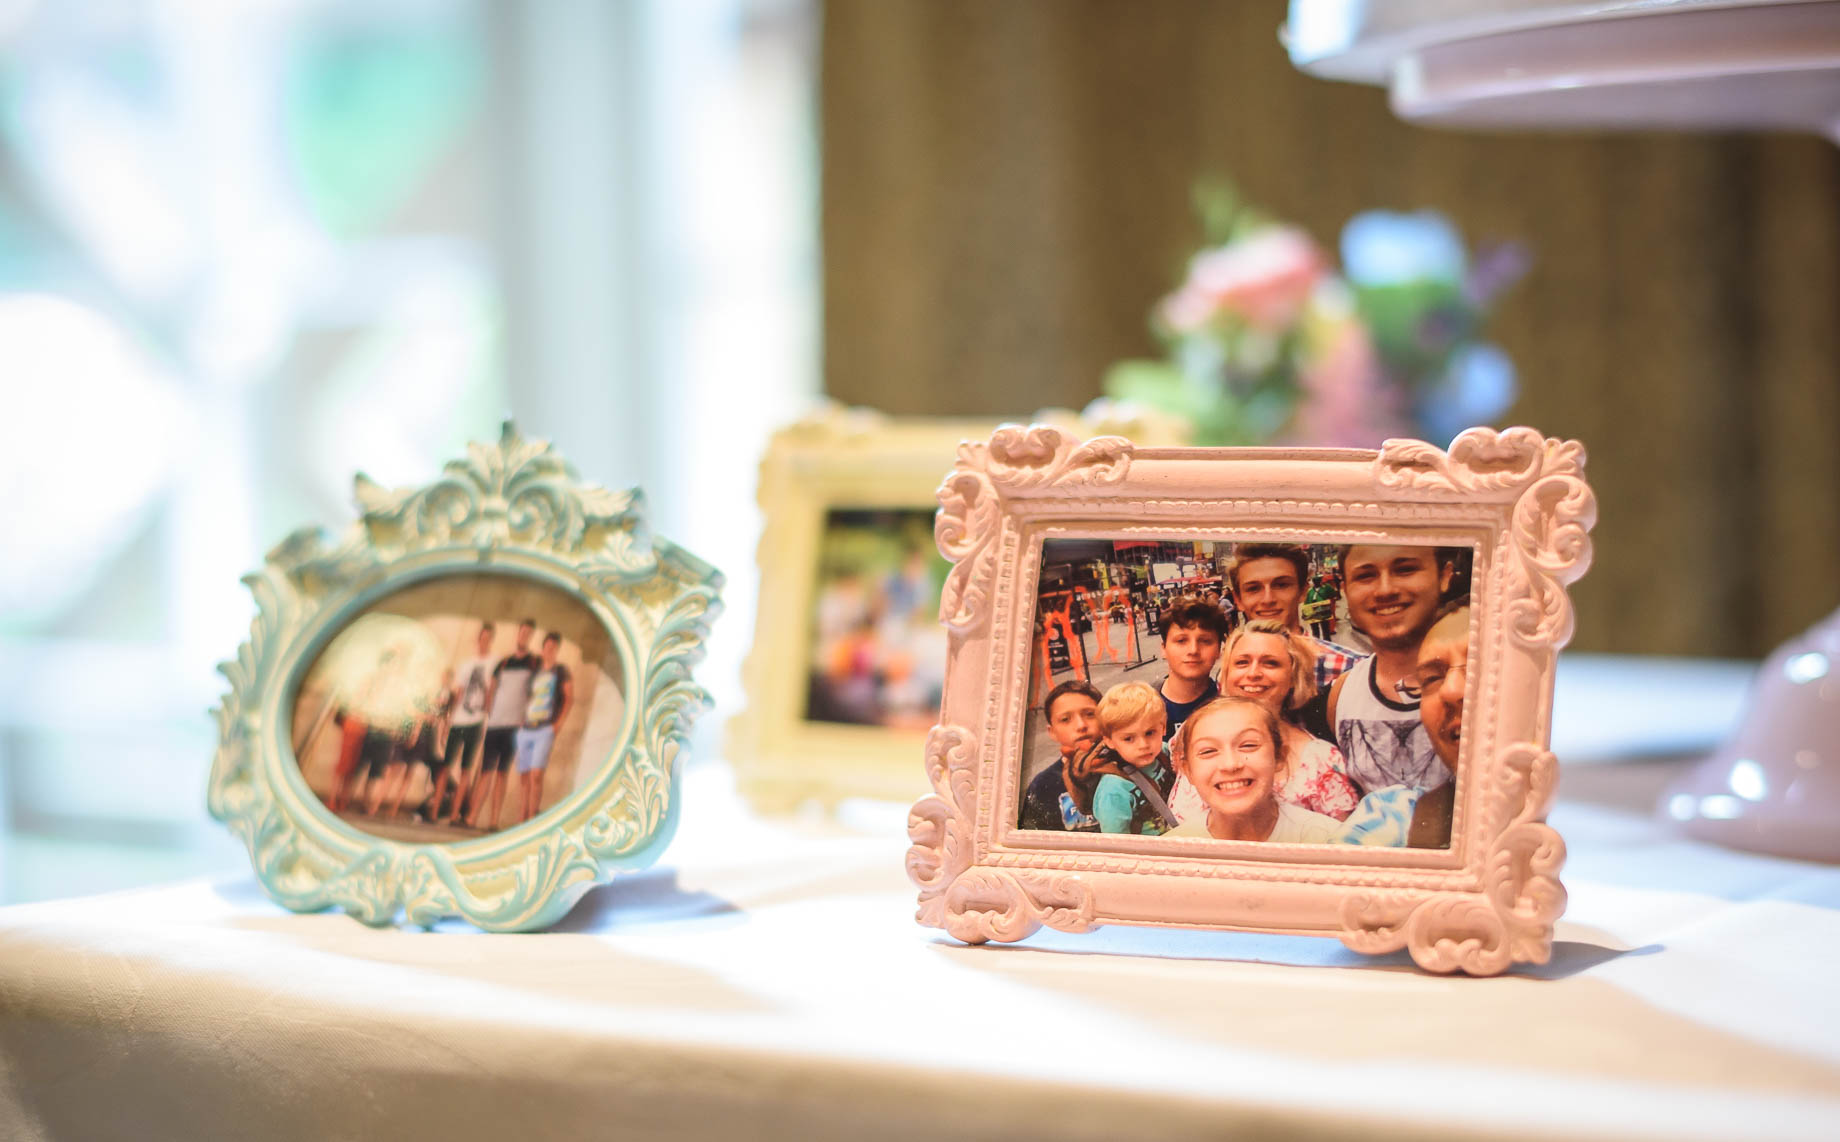 Luton Hoo wedding photography by Guy Collier Photography - Lauren and Gem (92 of 178)